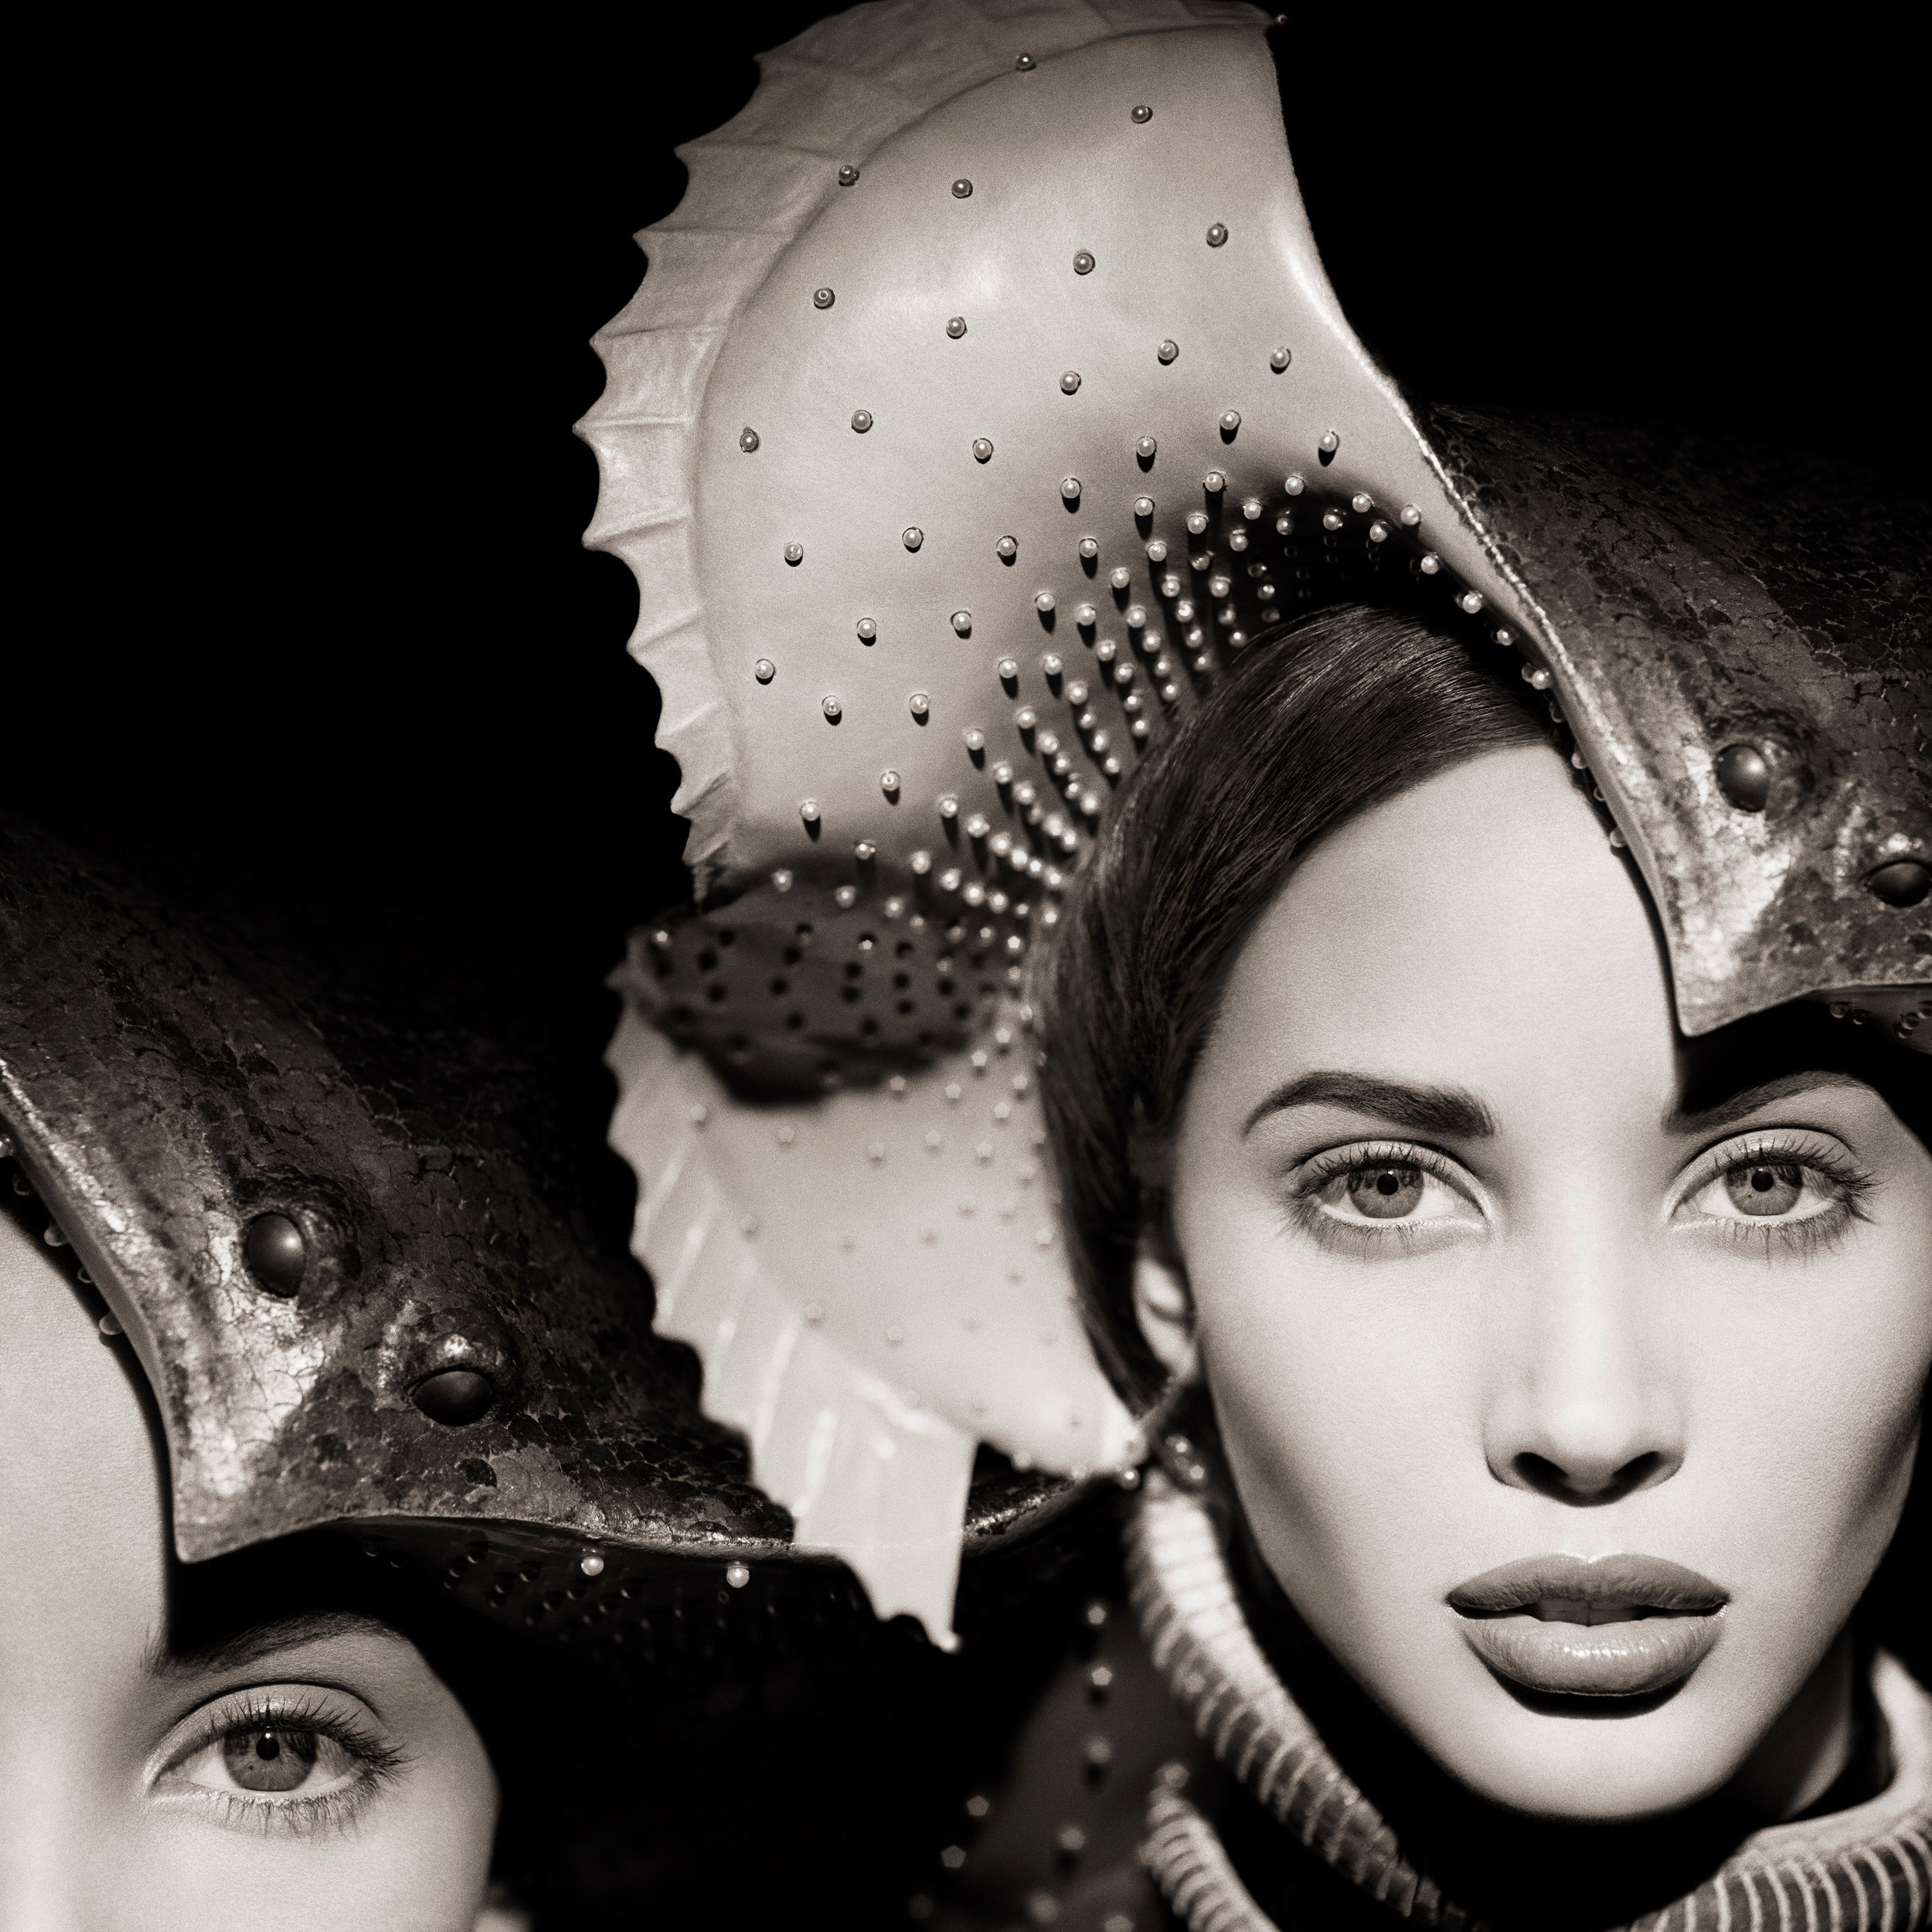 Christy Turlington, Manta Ray, The Surreal Thing, Series, New York, 1987